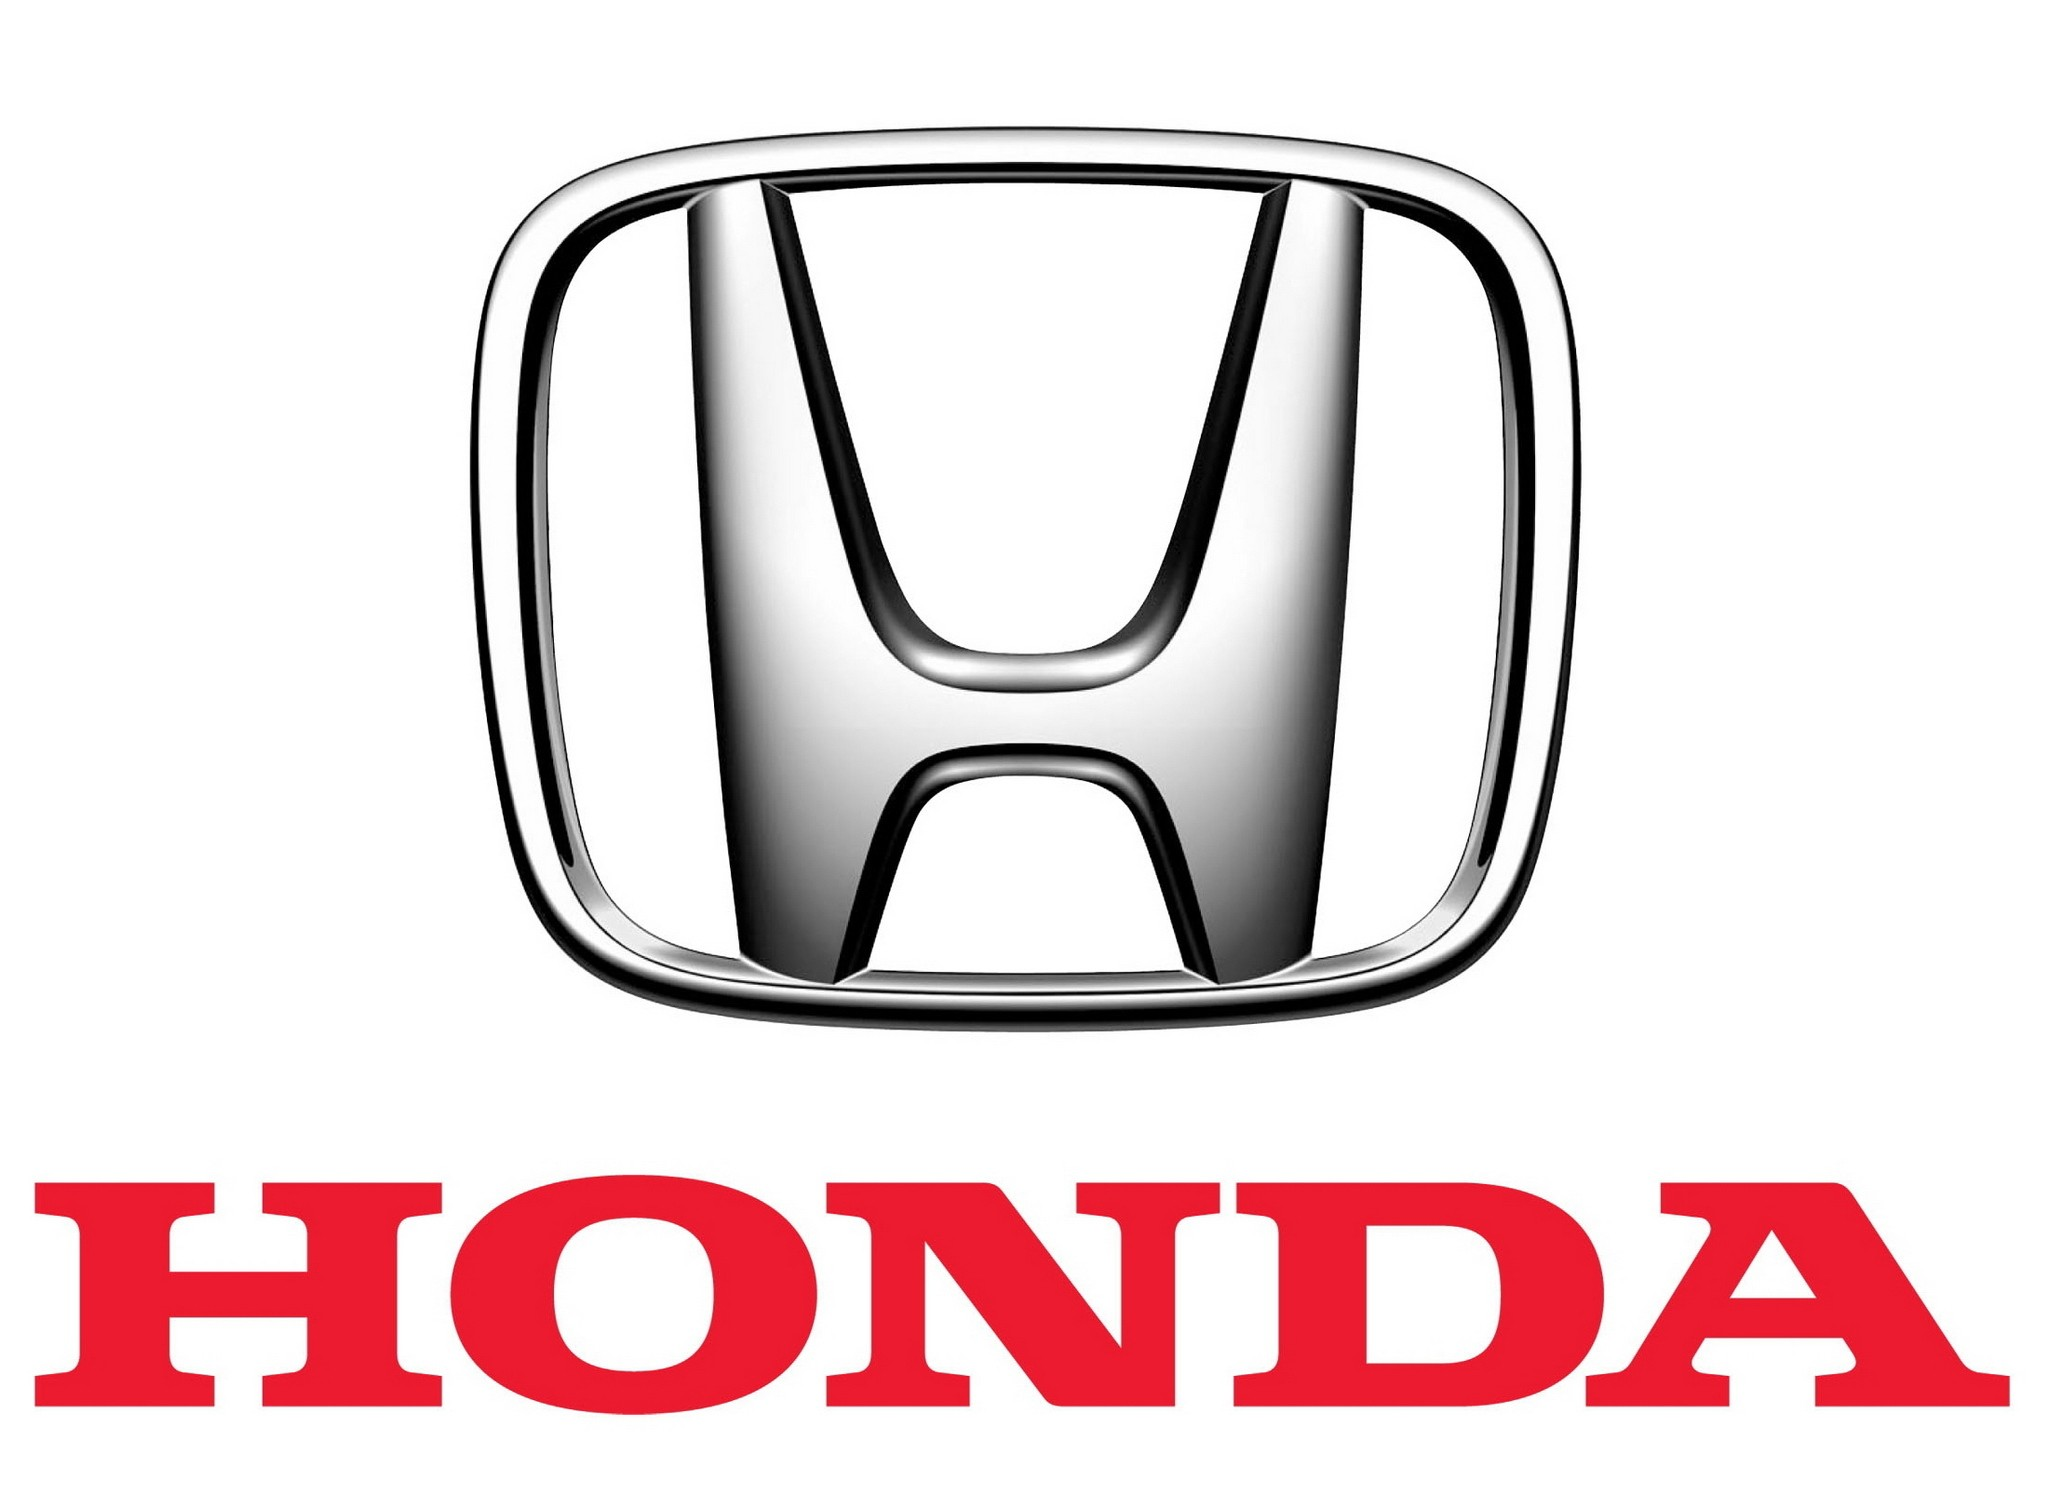 Honda Symbol Wallpaper